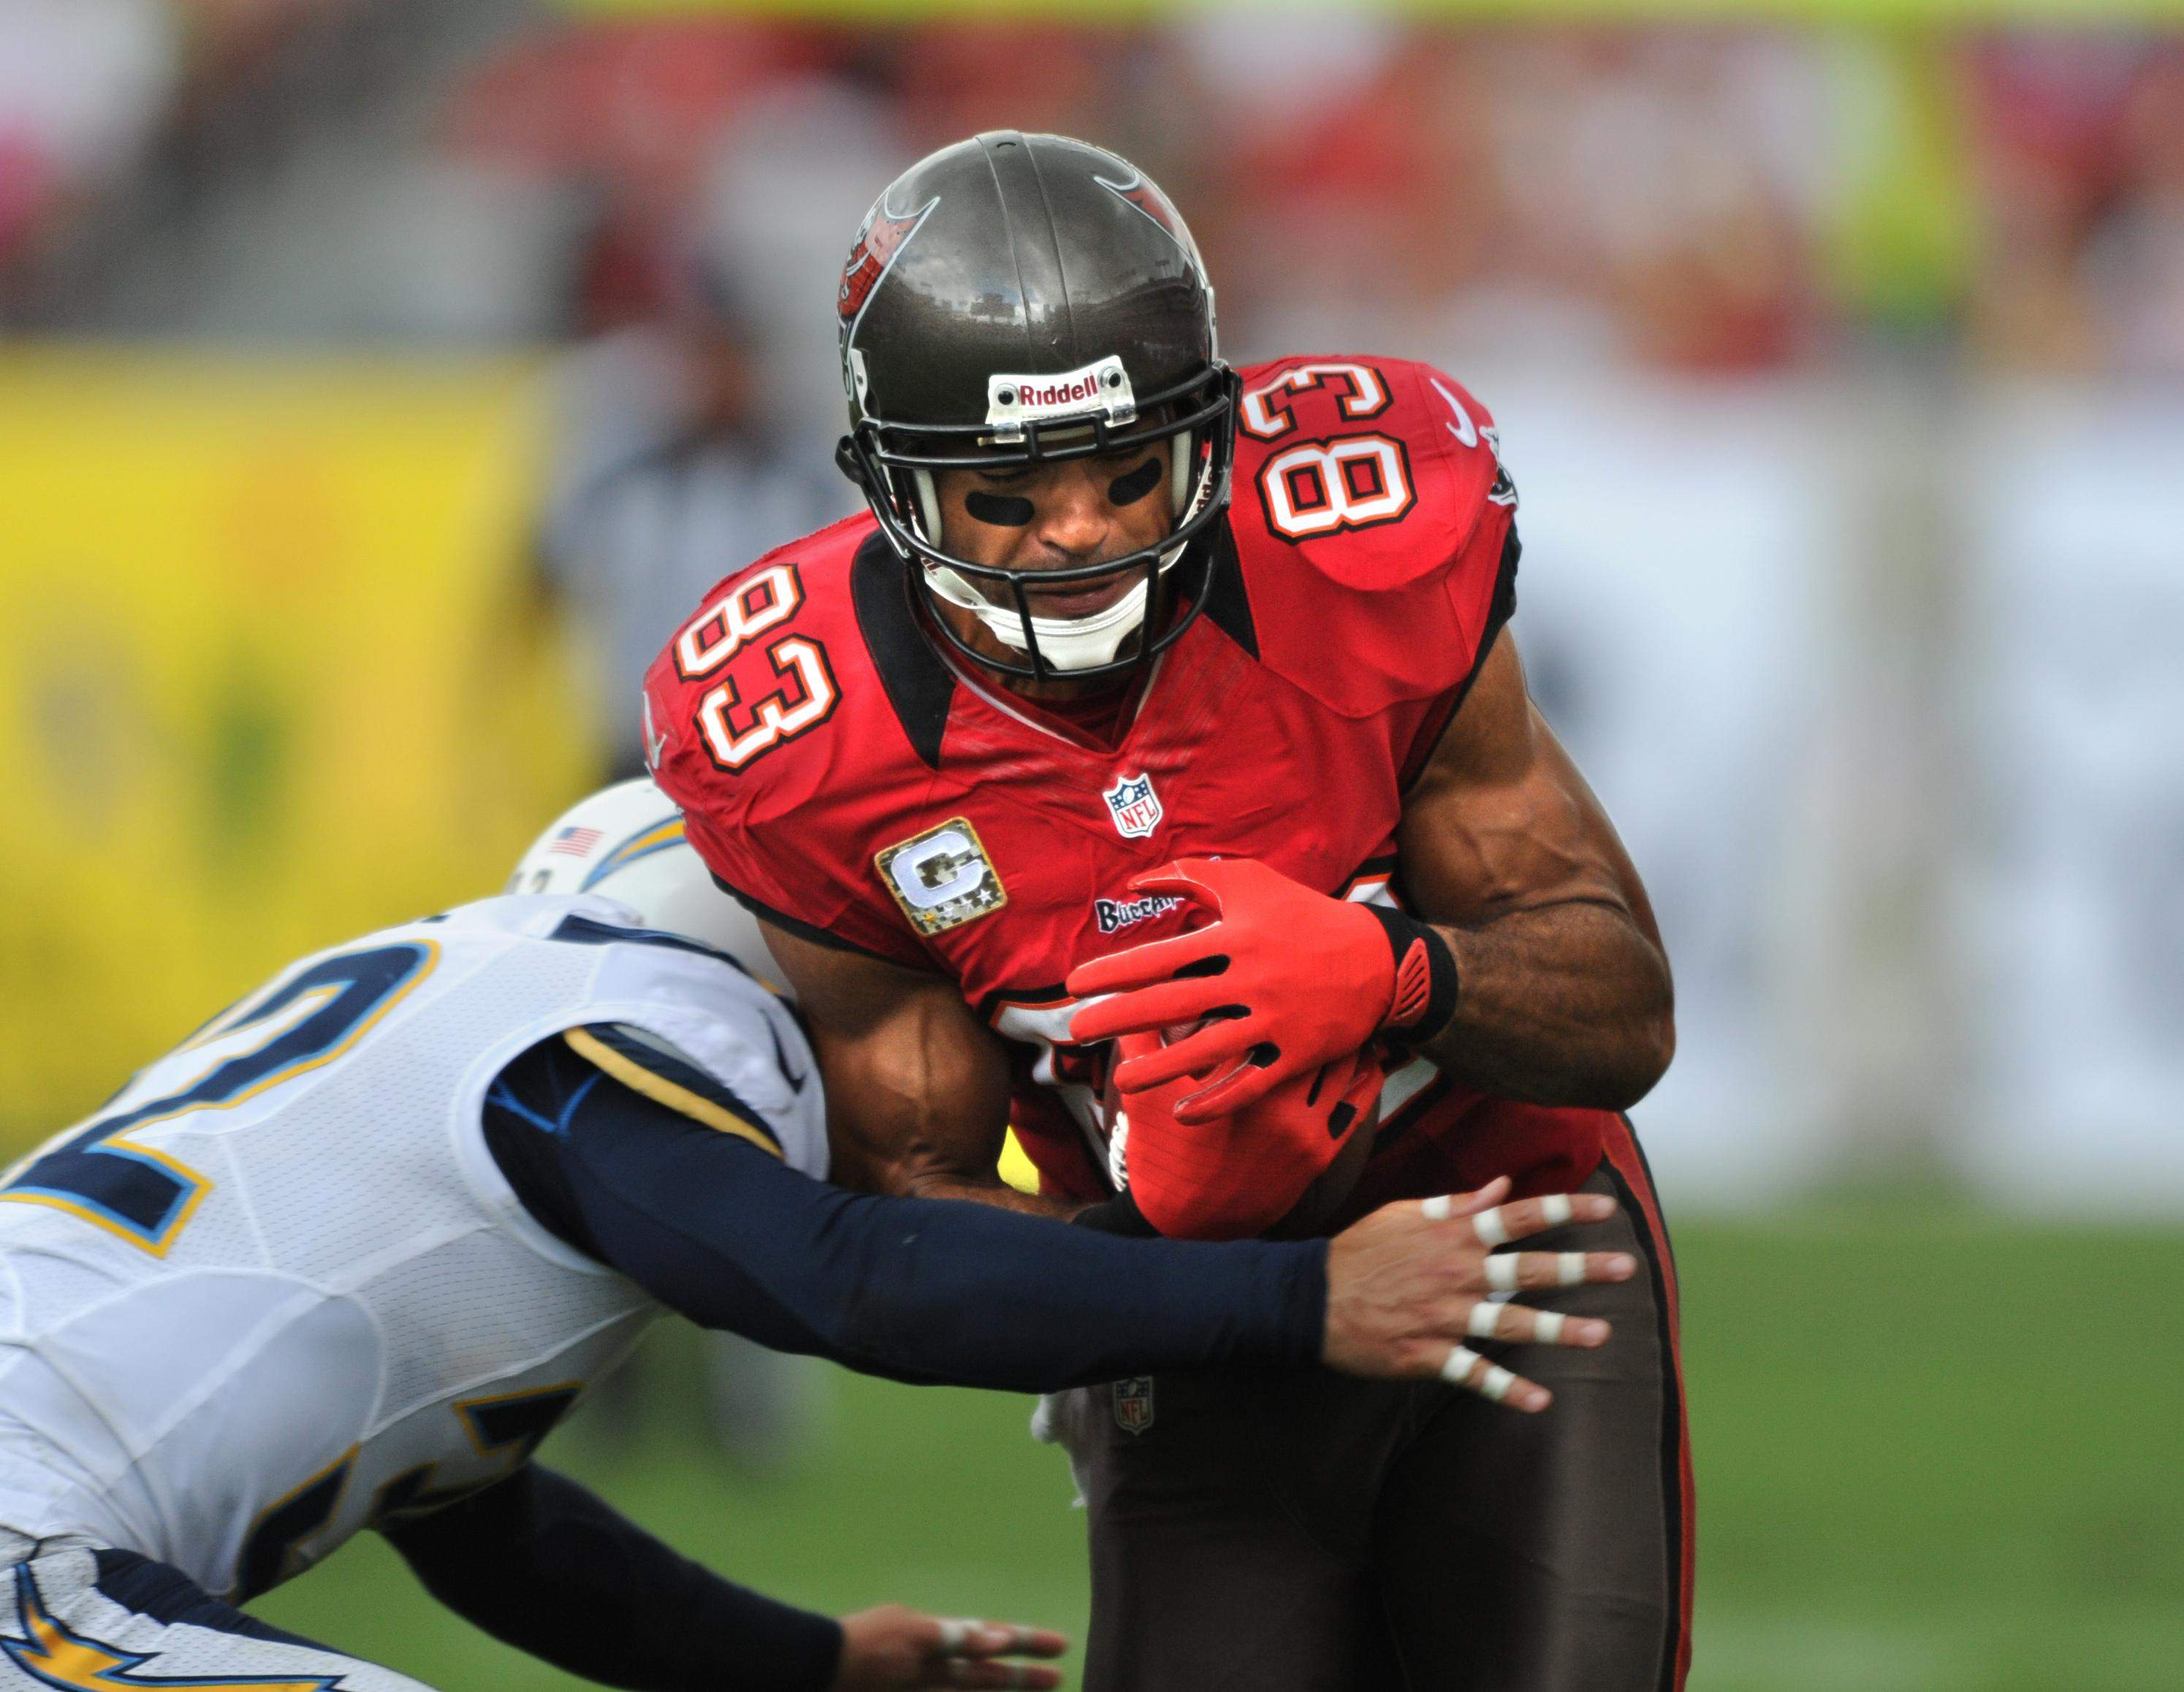 VincentJacksonCatch